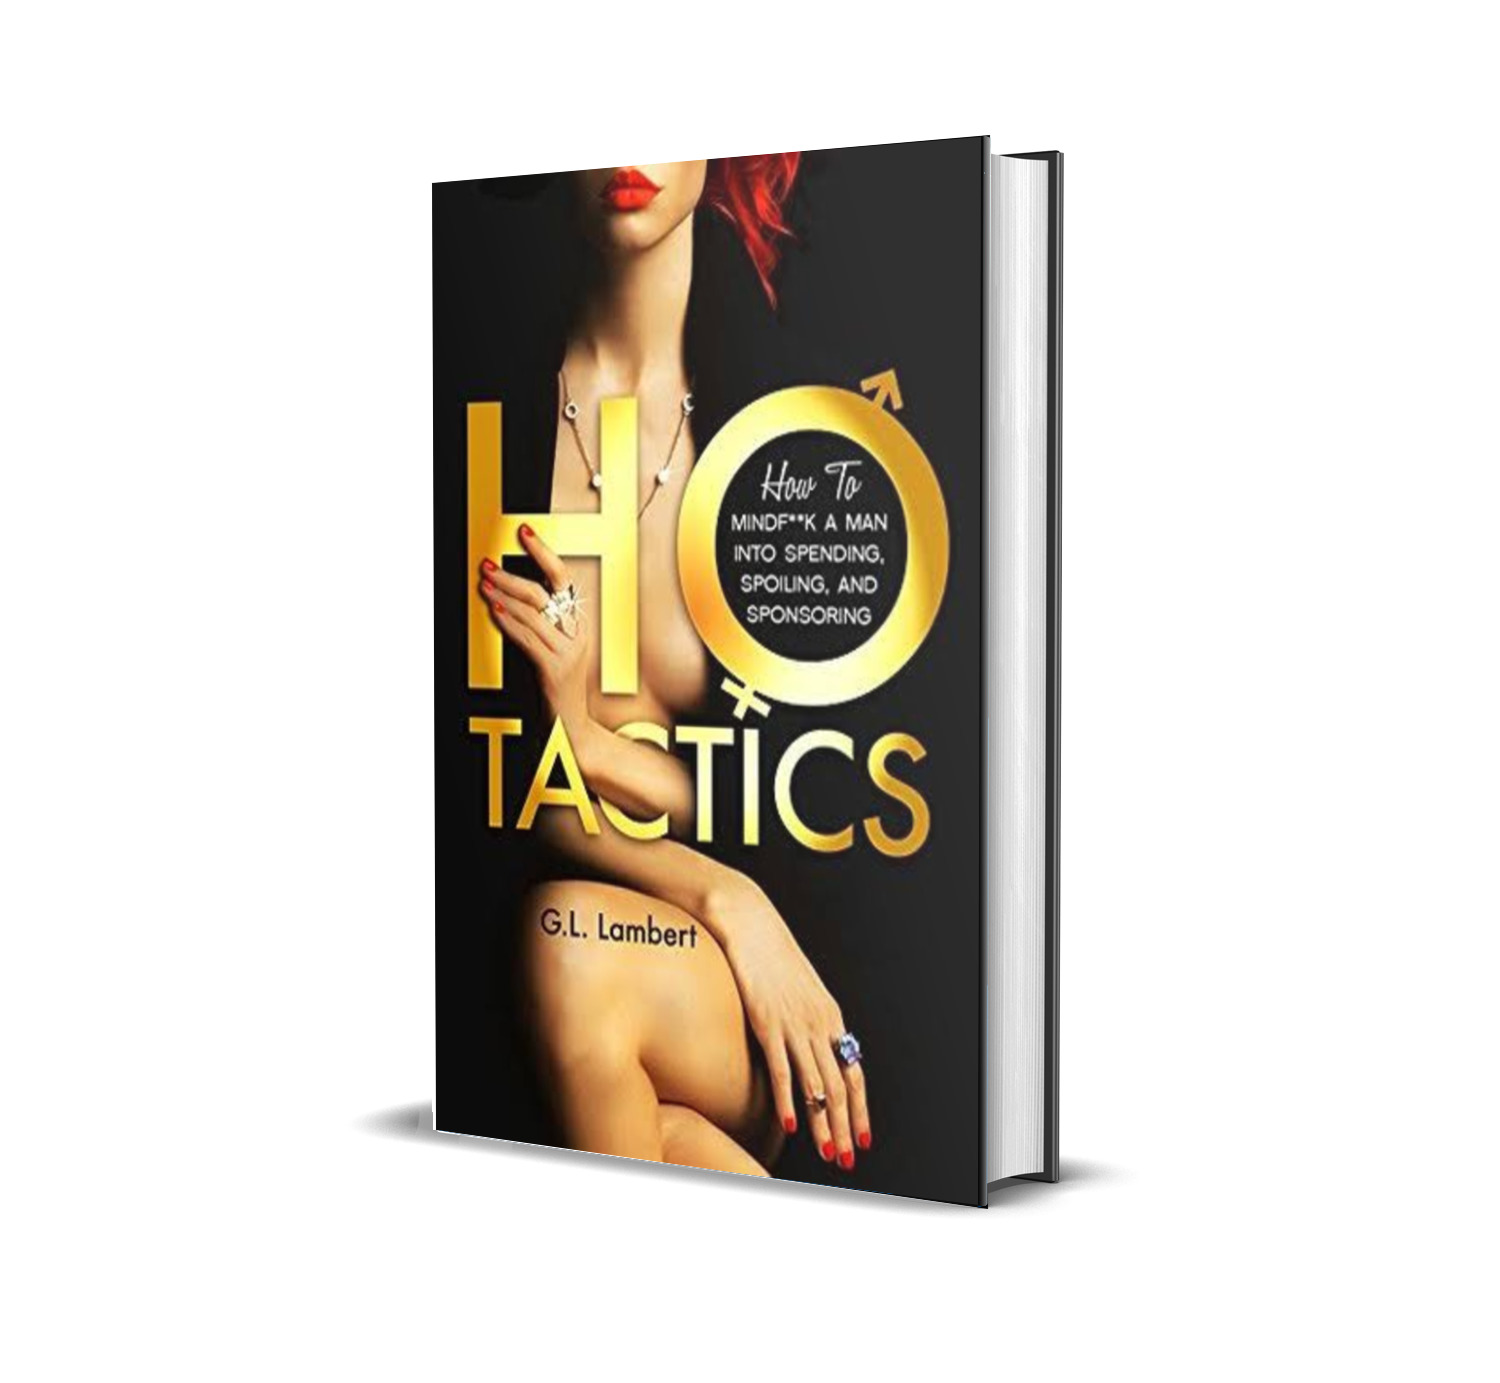 HO tactics; How to mind-fuck a man into spending, spoiling and sponsoring you as a woman.- G. L Lambert